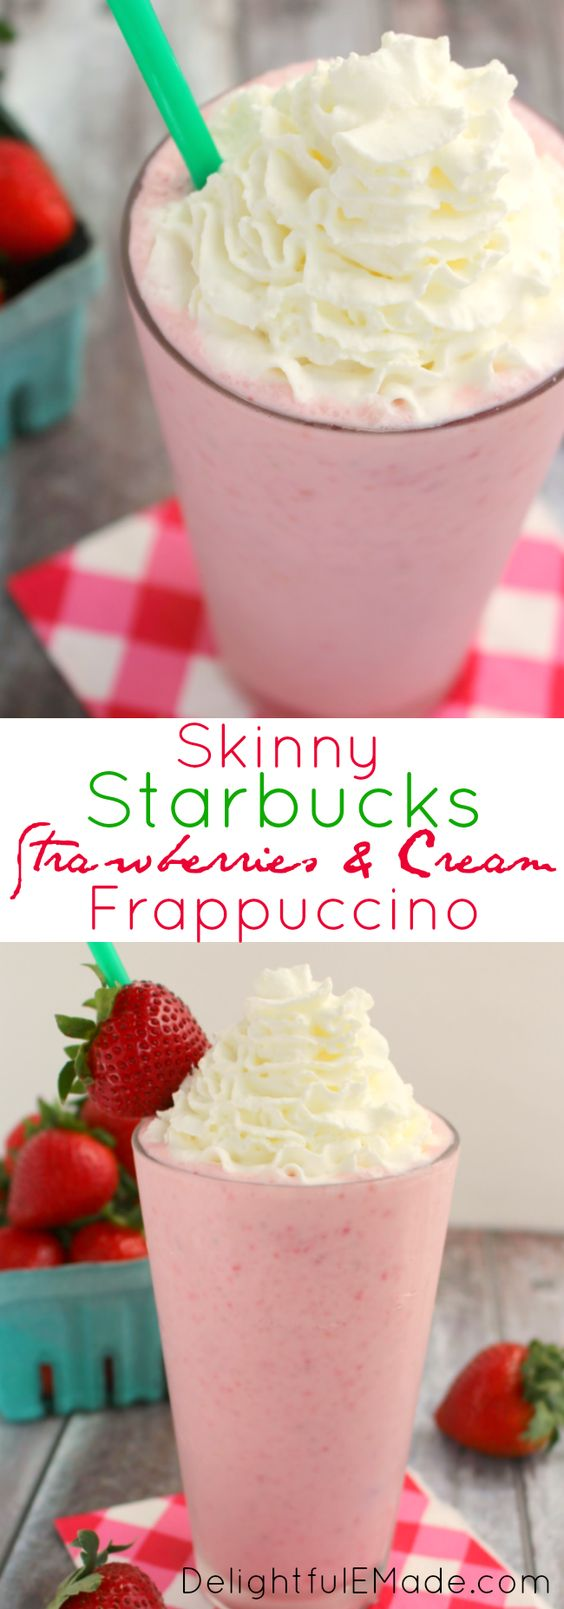 Love Starbucks Strawberries and Cream Frappuccino but don't like all the sugar, fat and calories?  I've got you covered with this delicious, skinny version! Creamy, full of fresh strawberry flavor and under 200 calories!